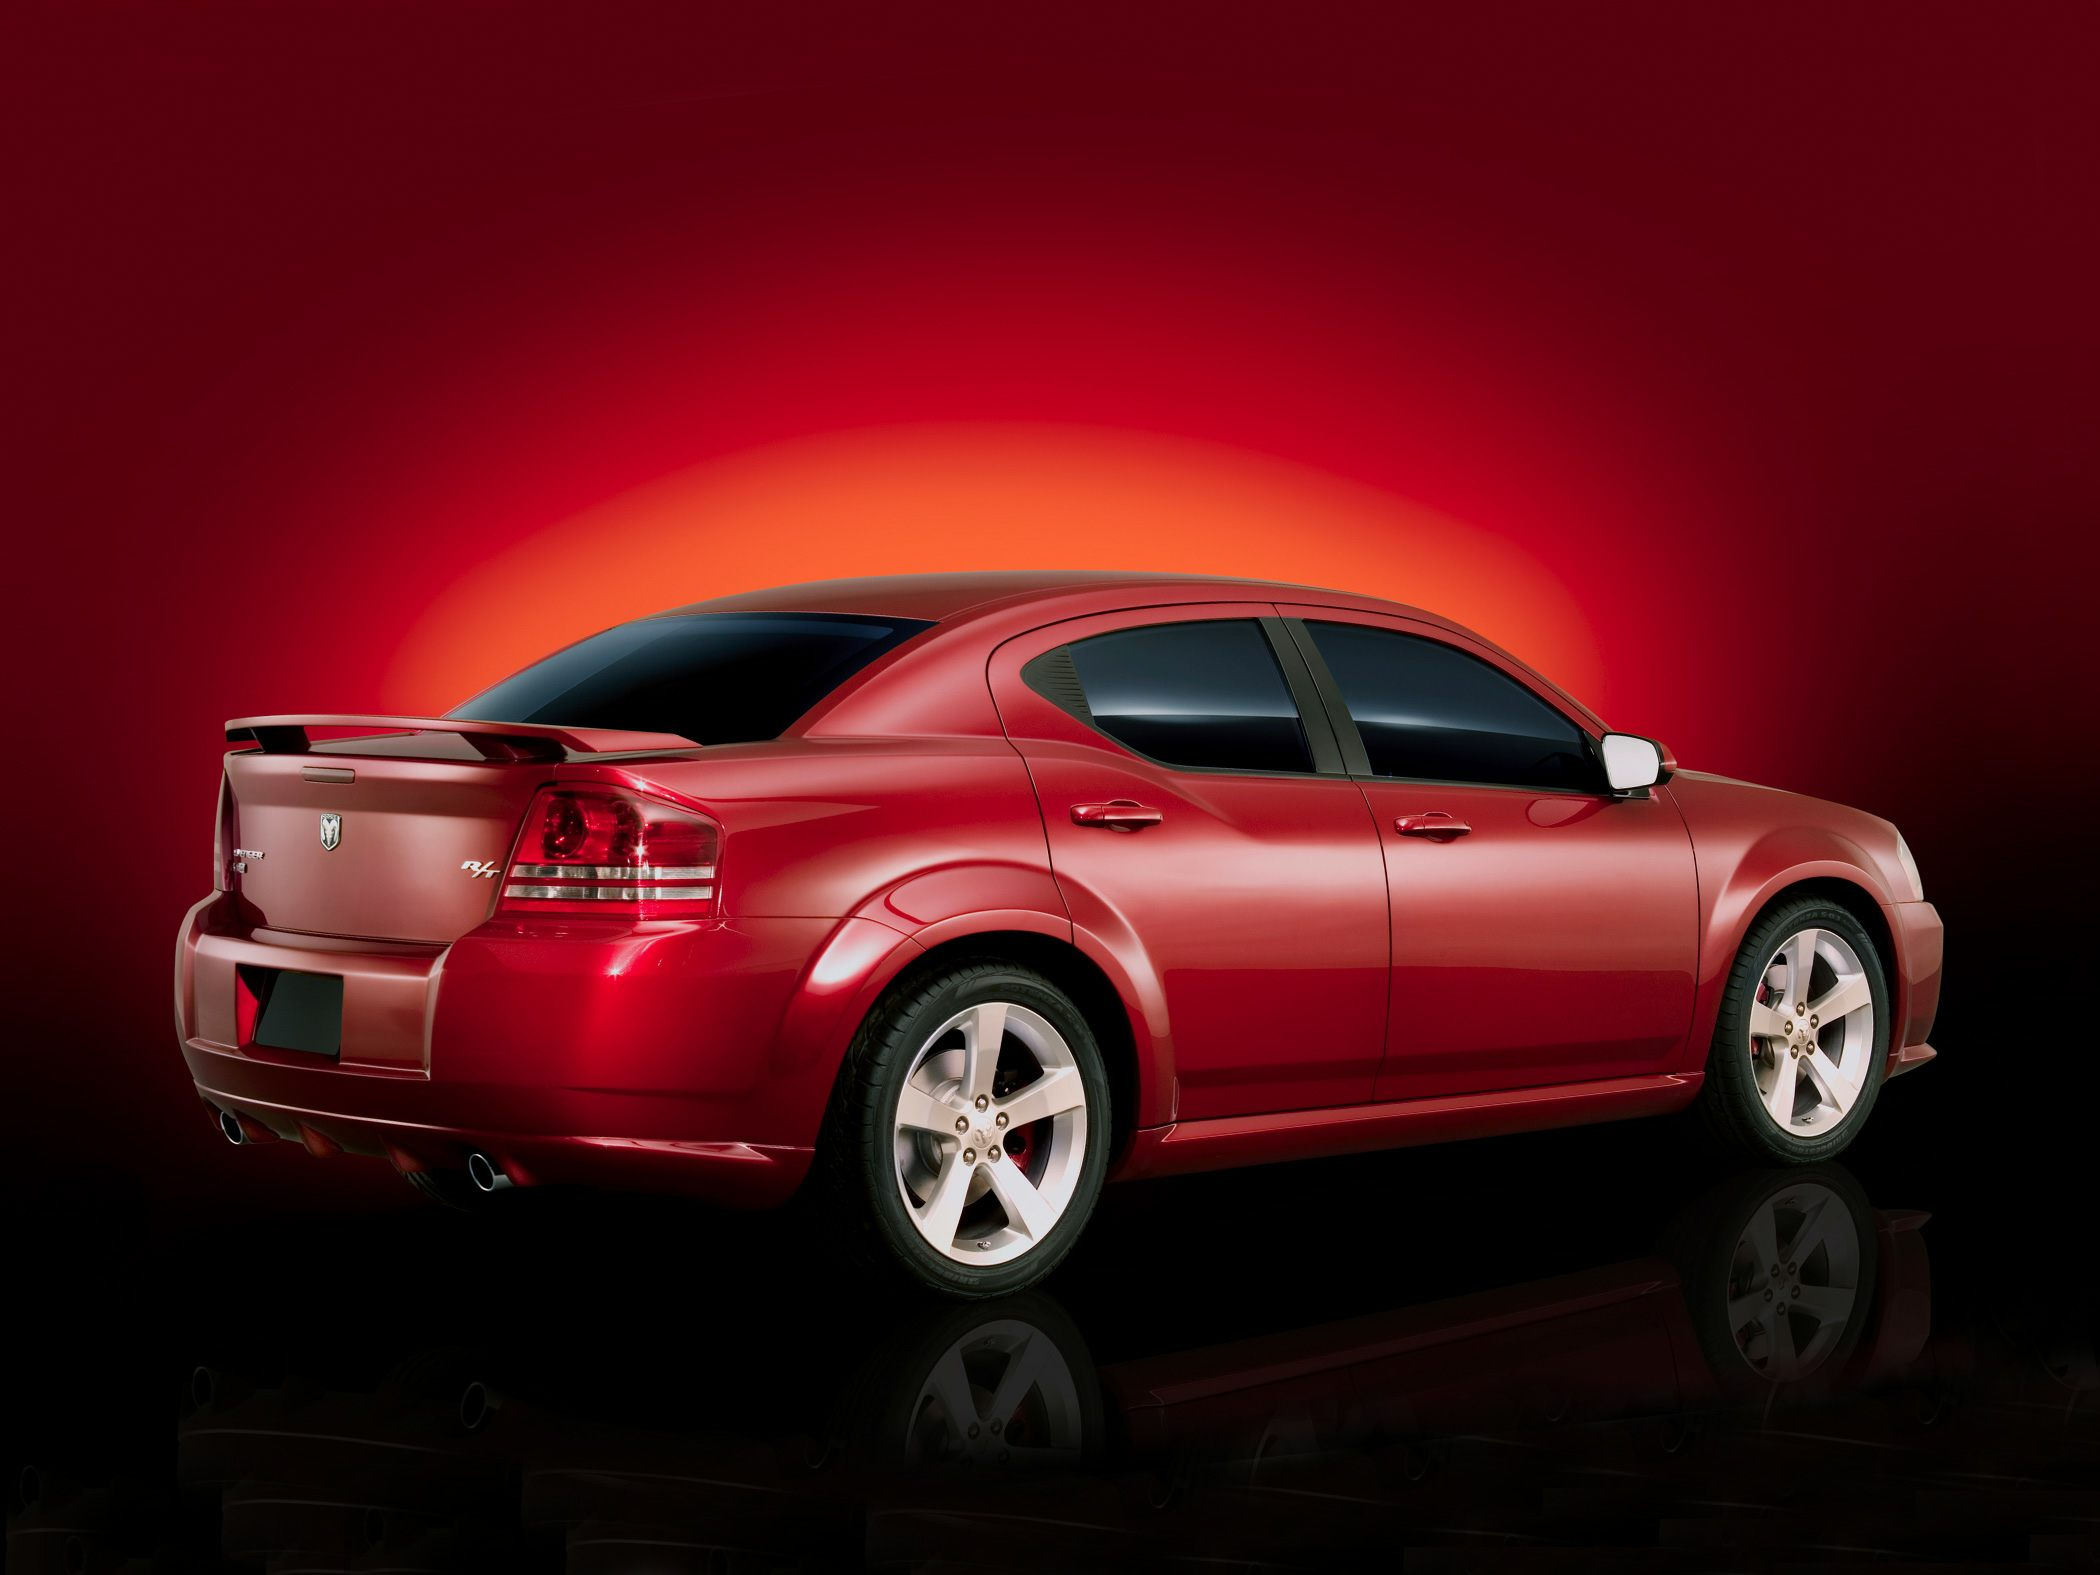 Dodge Avenger Sxt 2 2 Things You Need To Know About Dodge Avenger Sxt 2 Today In 2021 Dodge Avenger Dodge Avengers